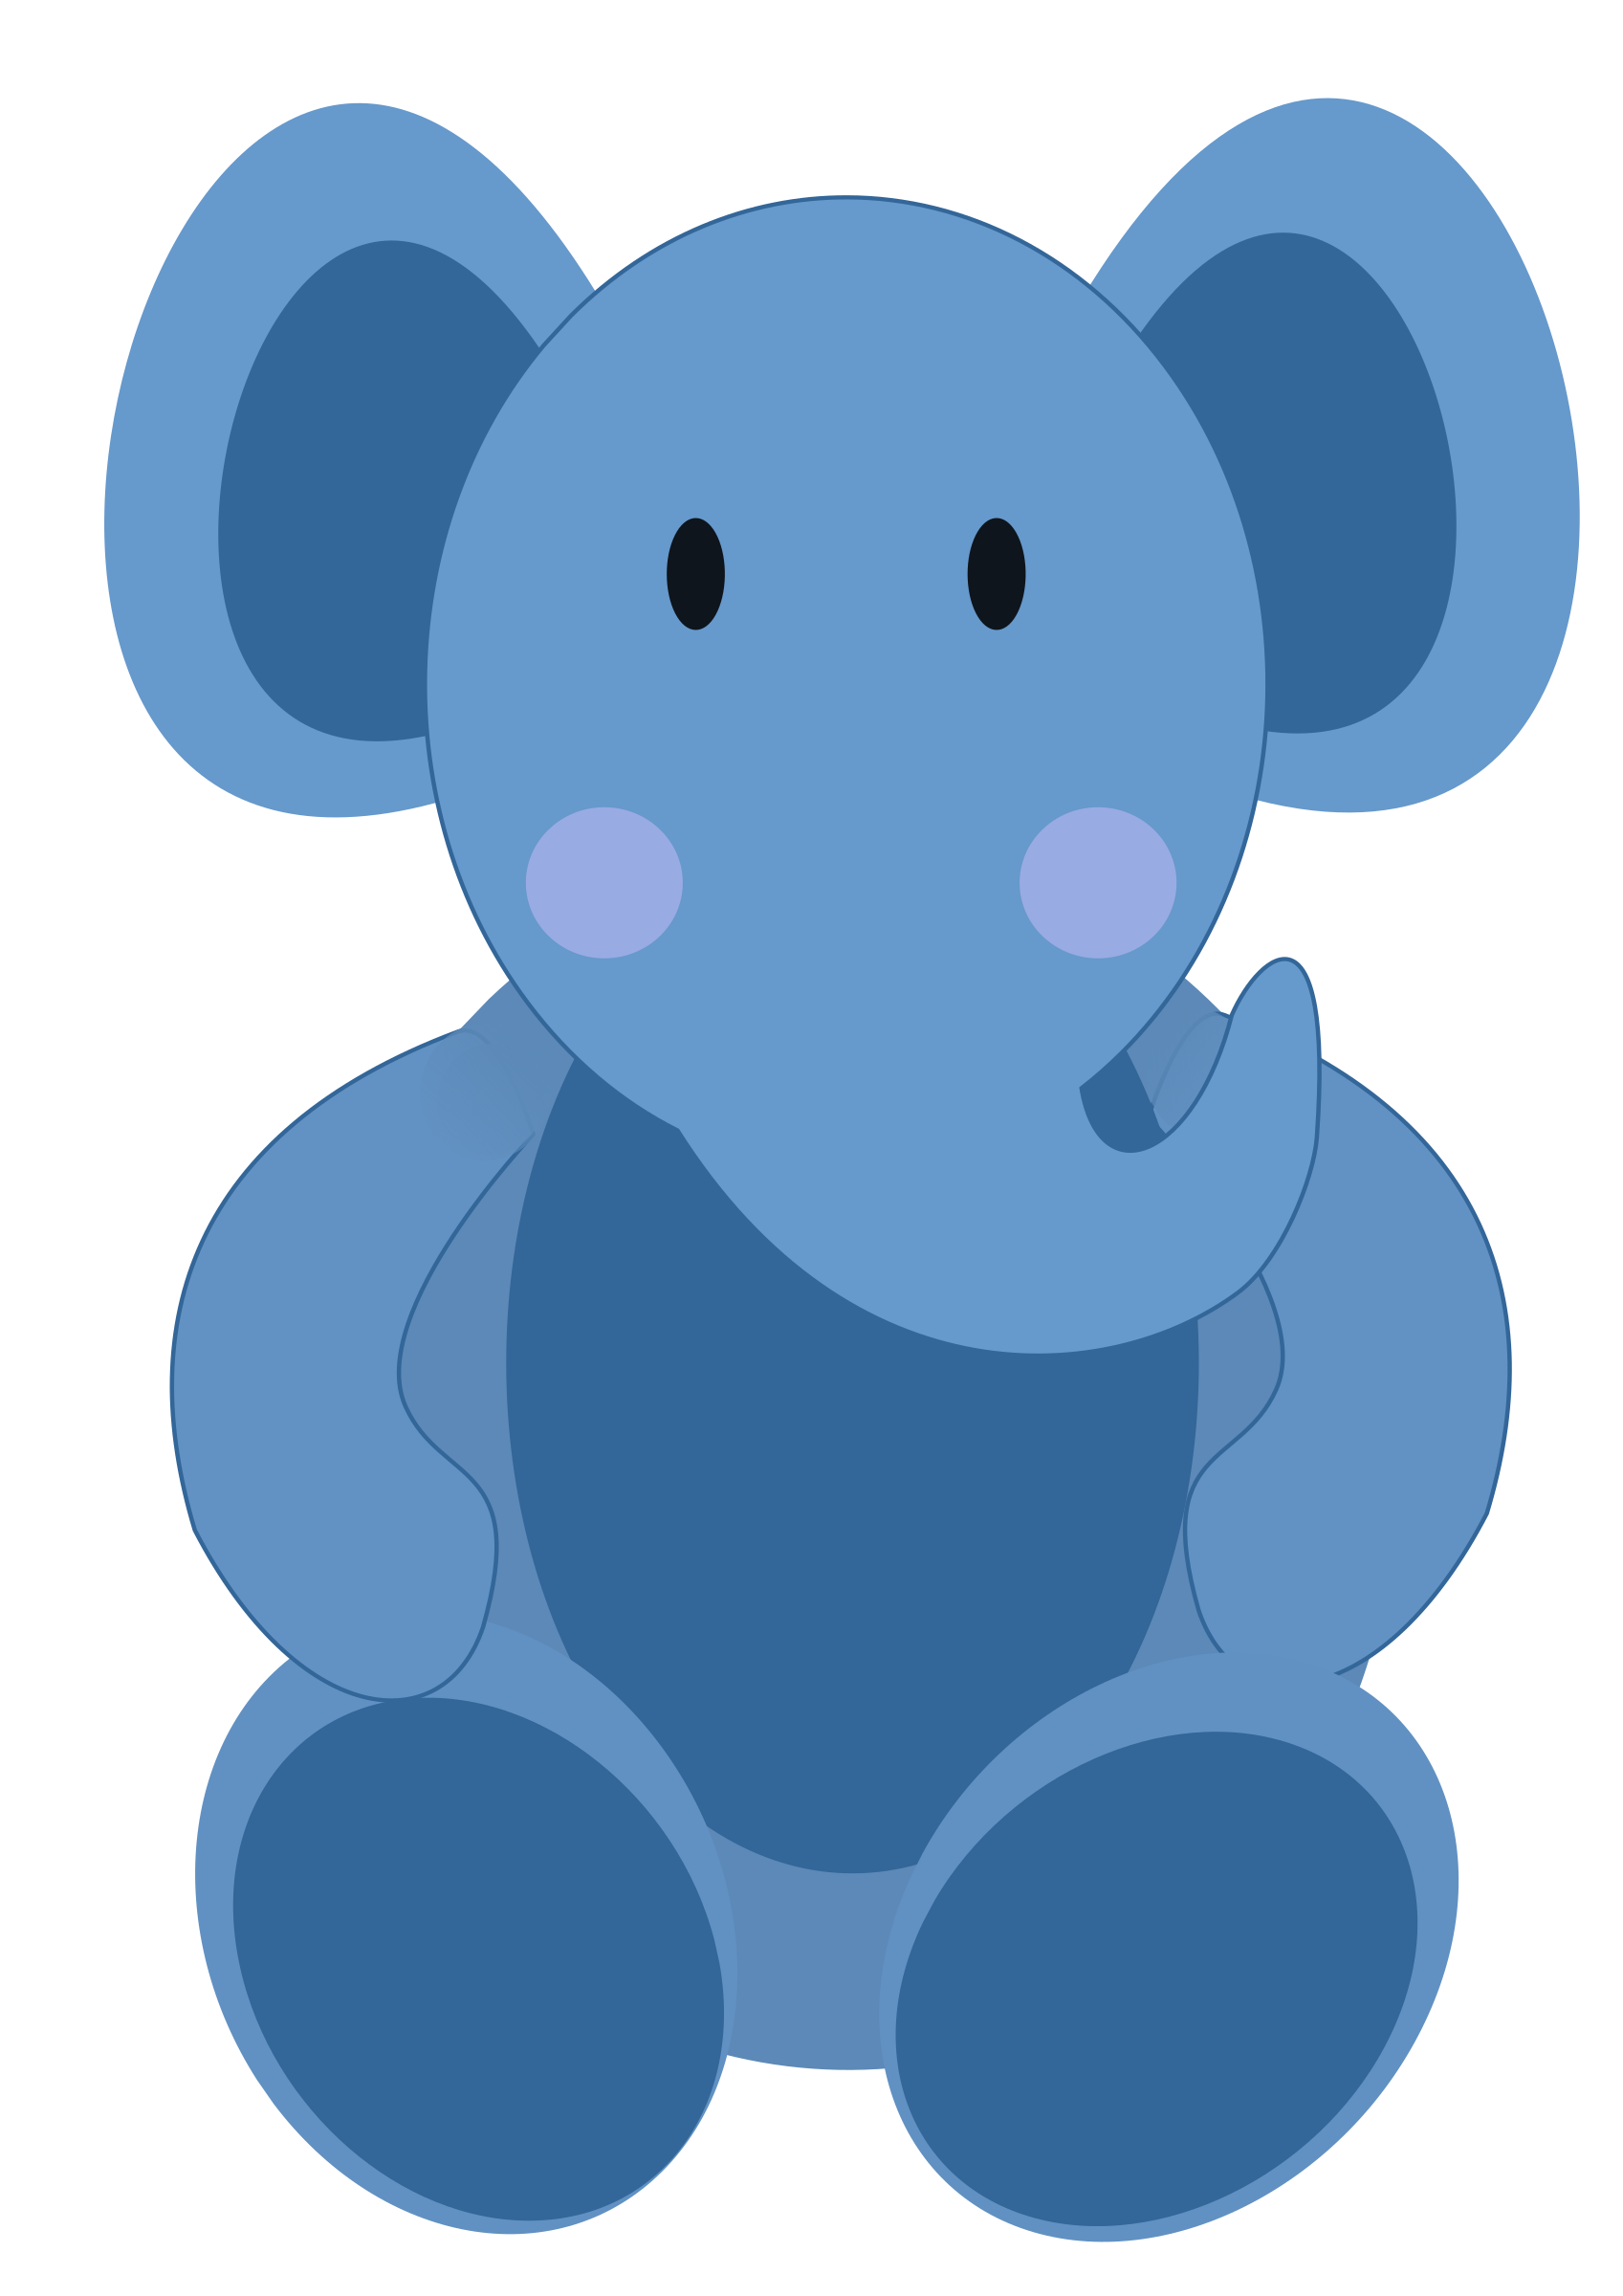 Heart clipart elephant. Baby by cgillis images